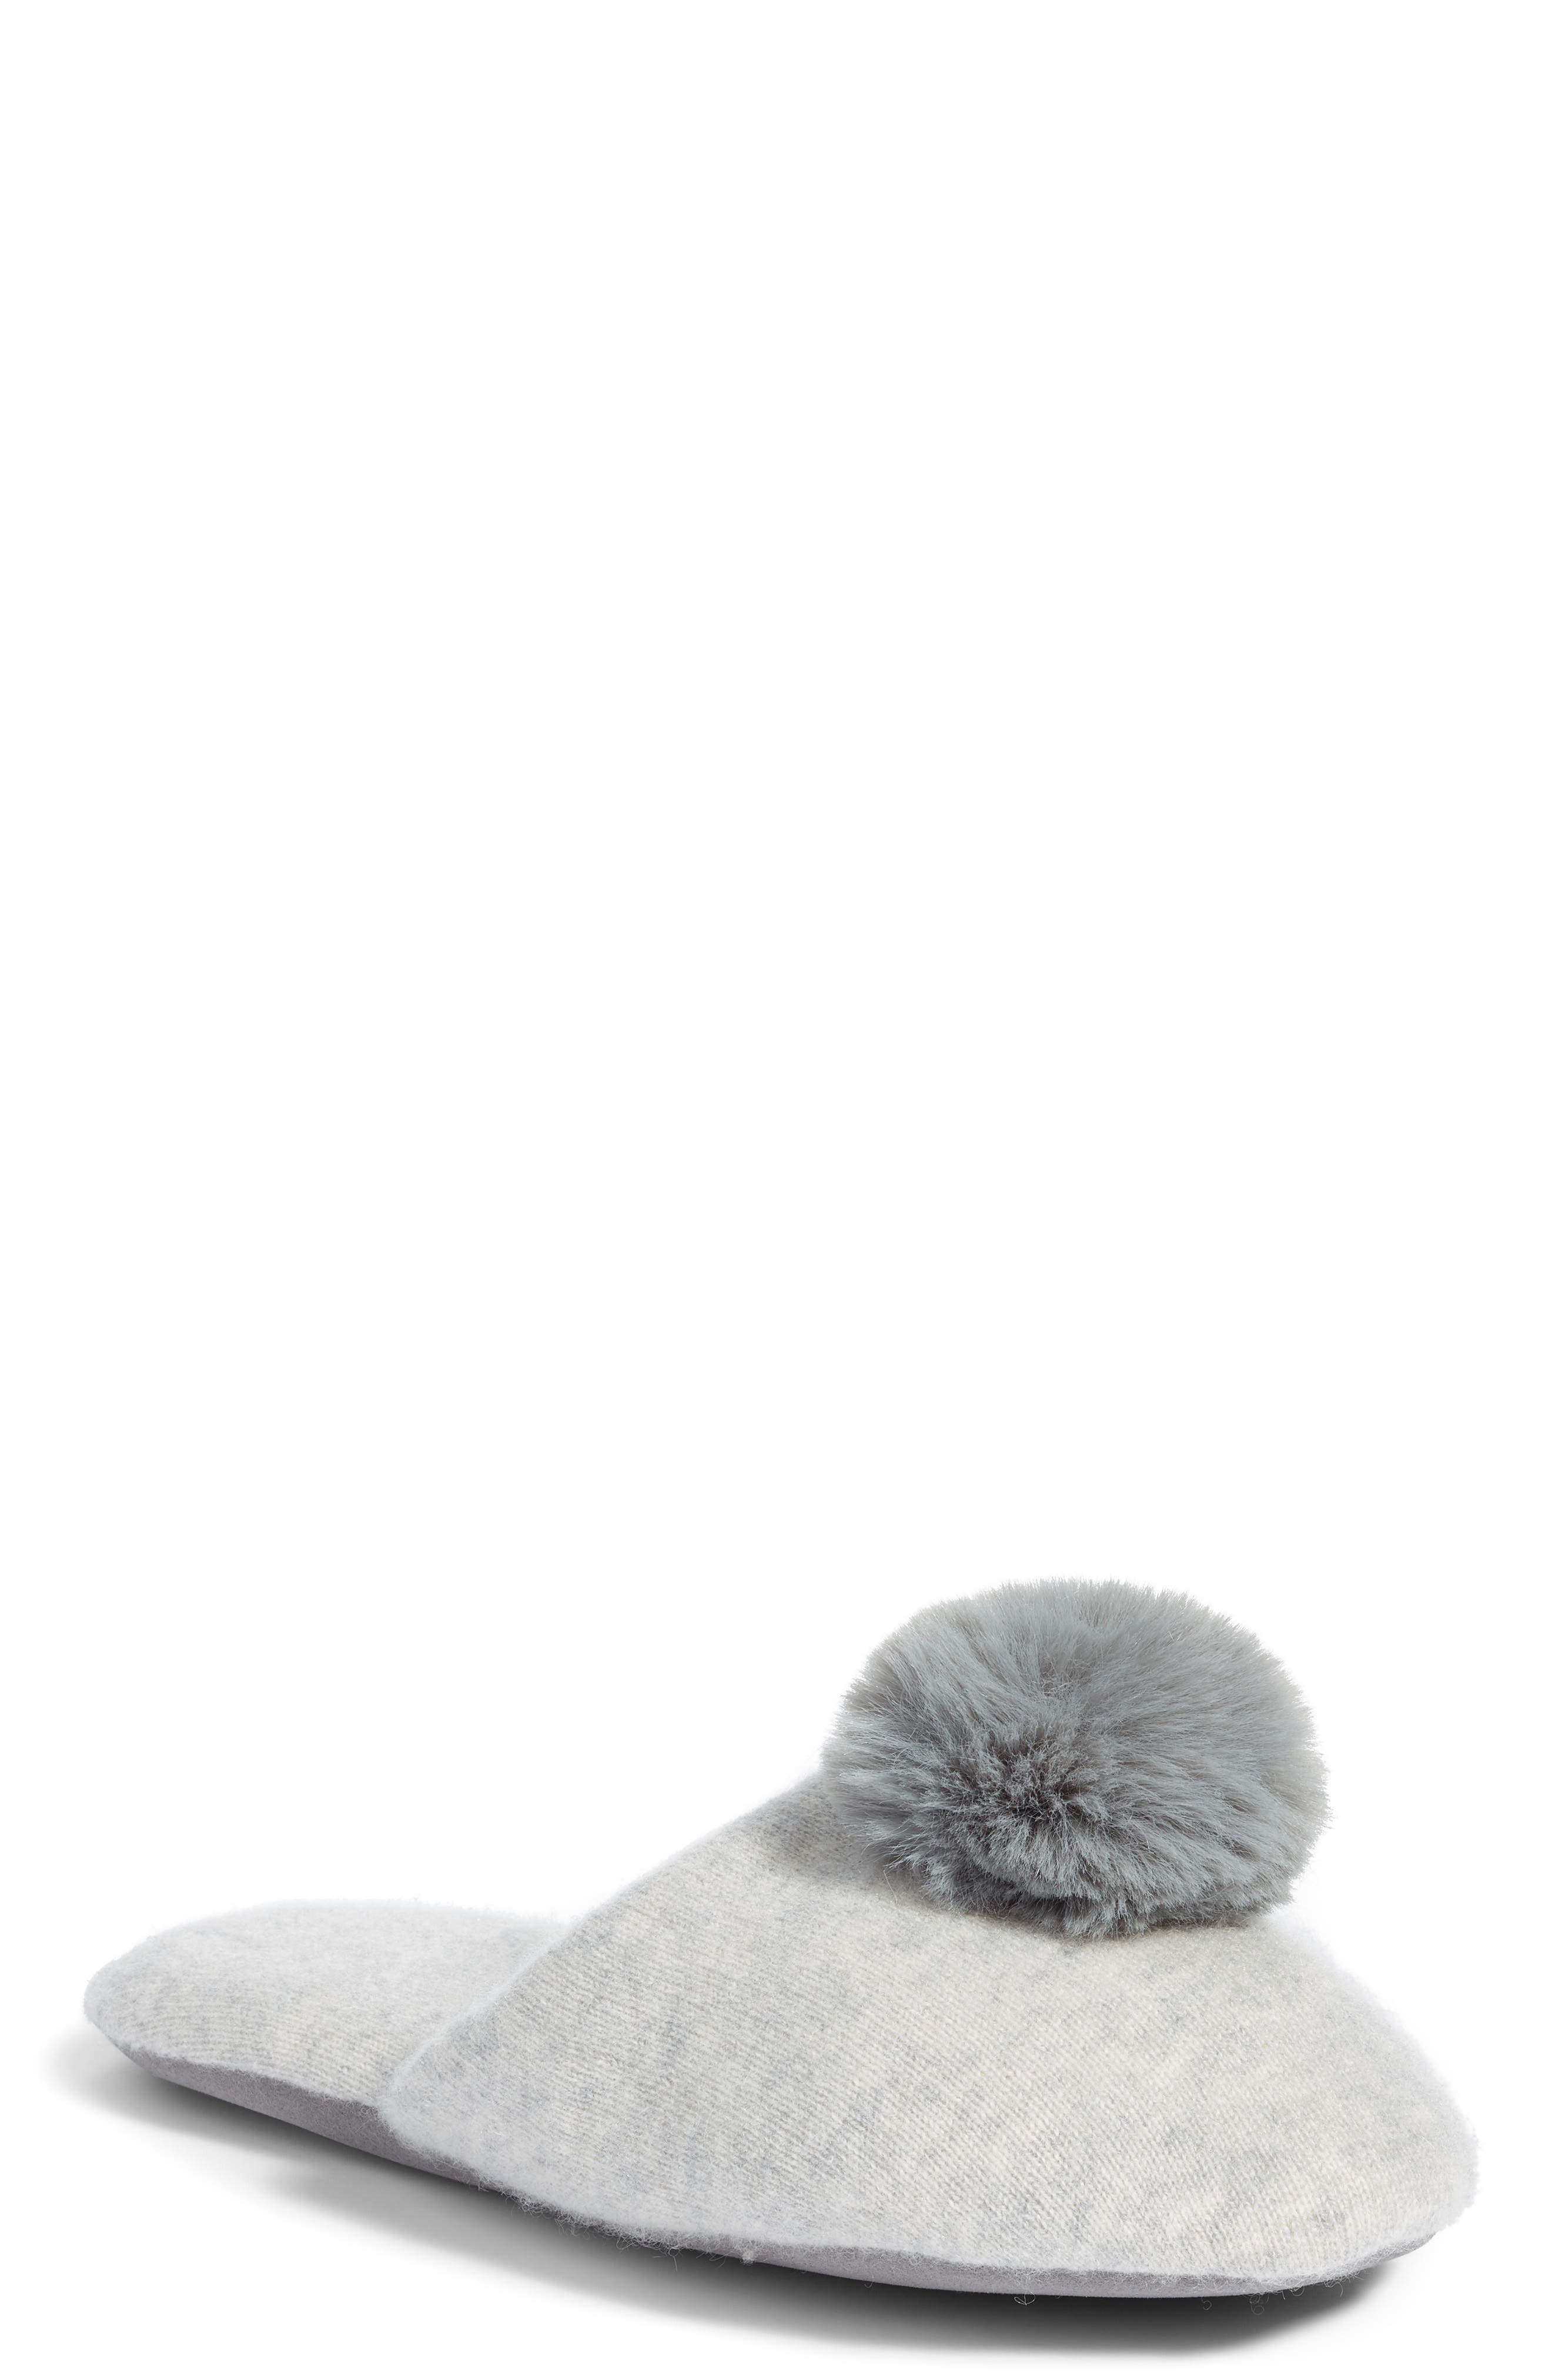 NORDSTROM,                             Wool & Cashmere Slippers with Faux Fur Pompom,                             Main thumbnail 1, color,                             GREY HEATHER